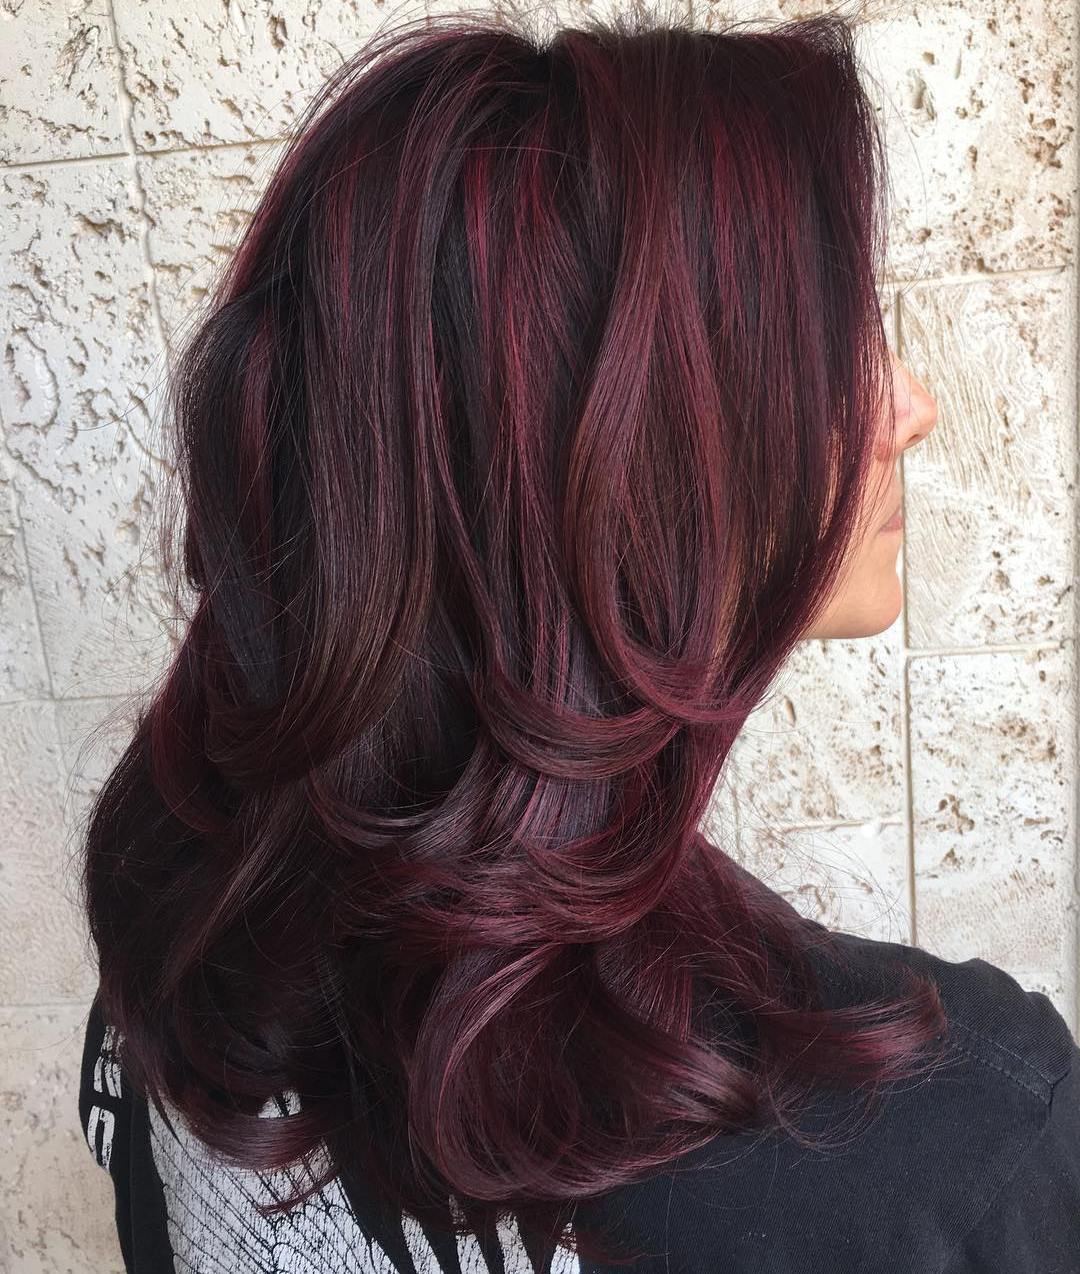 30a4b793808e04 How To Get The Perfect Shade Of Dark Burgundy Brown Hair Color